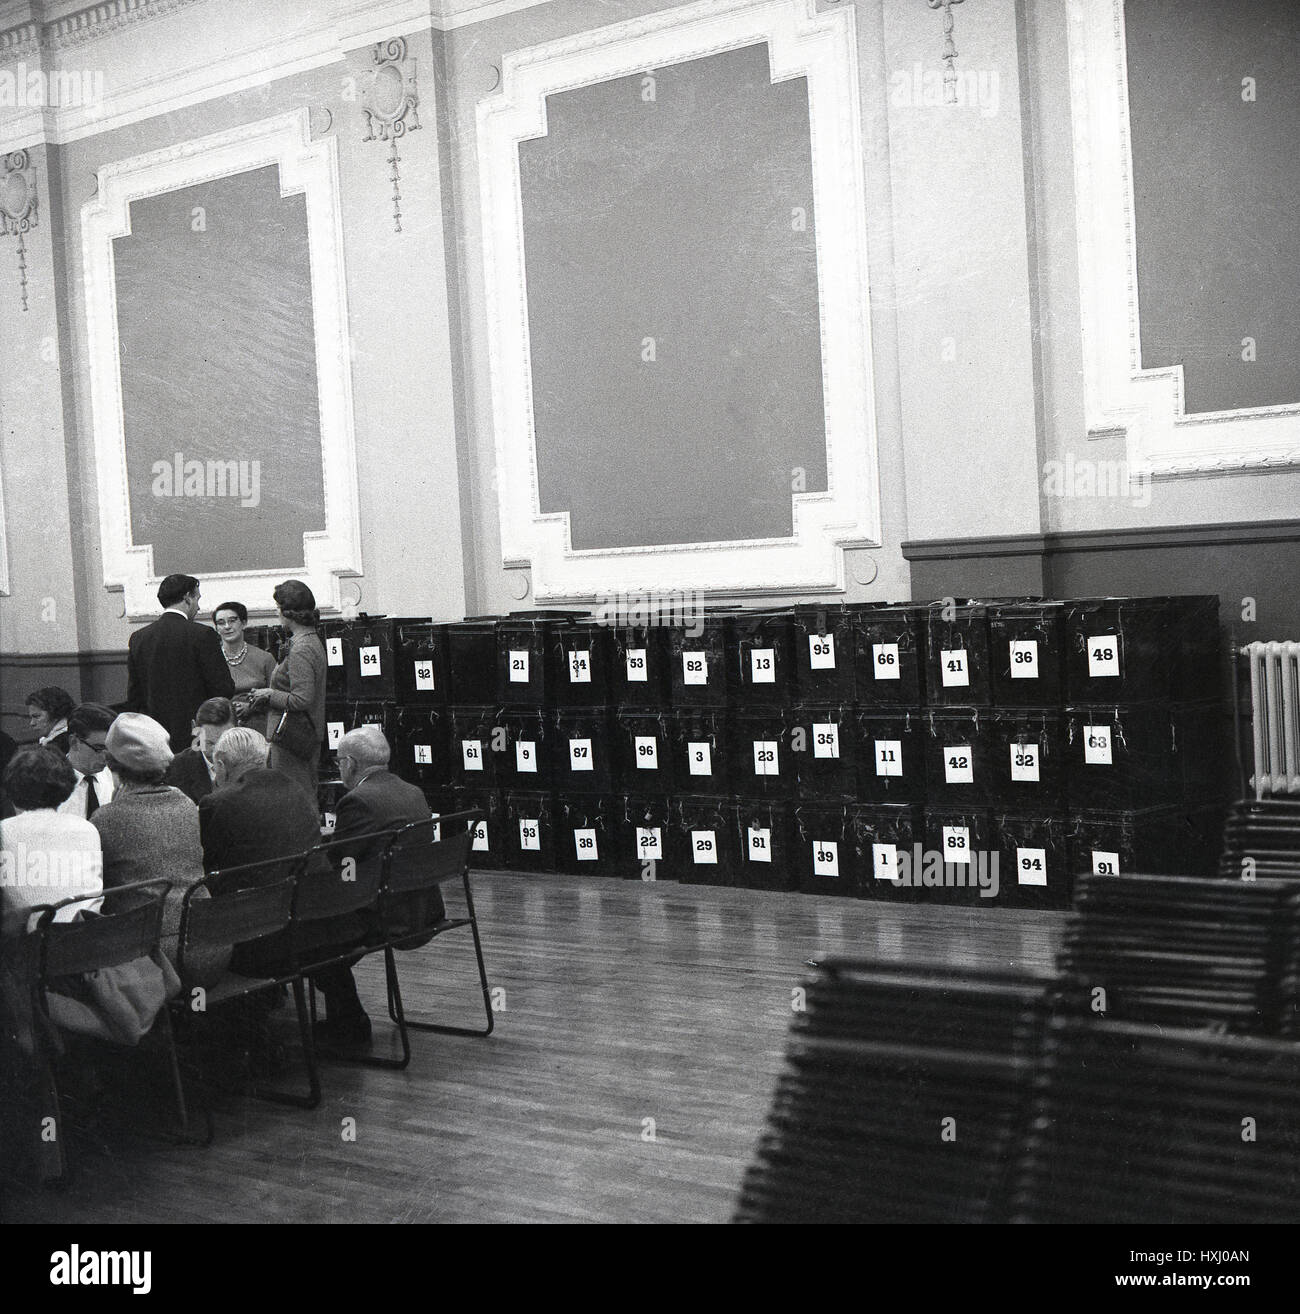 1960s, historical, line-up of metal ballot boxes in voting counting hall, Aylesbury, England. - Stock Image